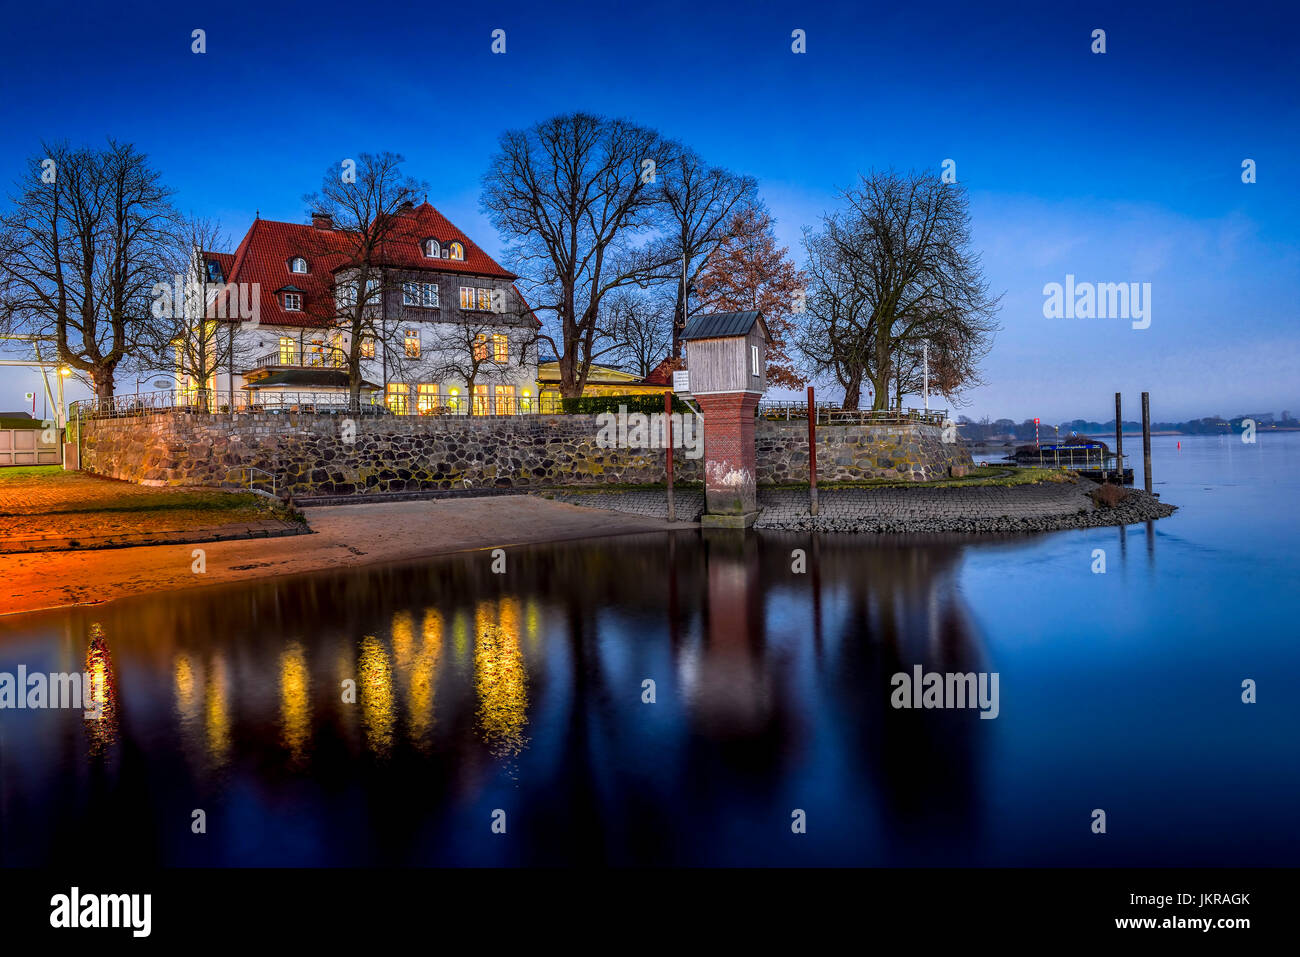 Zollenspieker ferry boat-house on the Elbe in Kirchwerder, 4 and marshy land, Hamburg, Germany, Europe, Zollenspieker - Stock Image